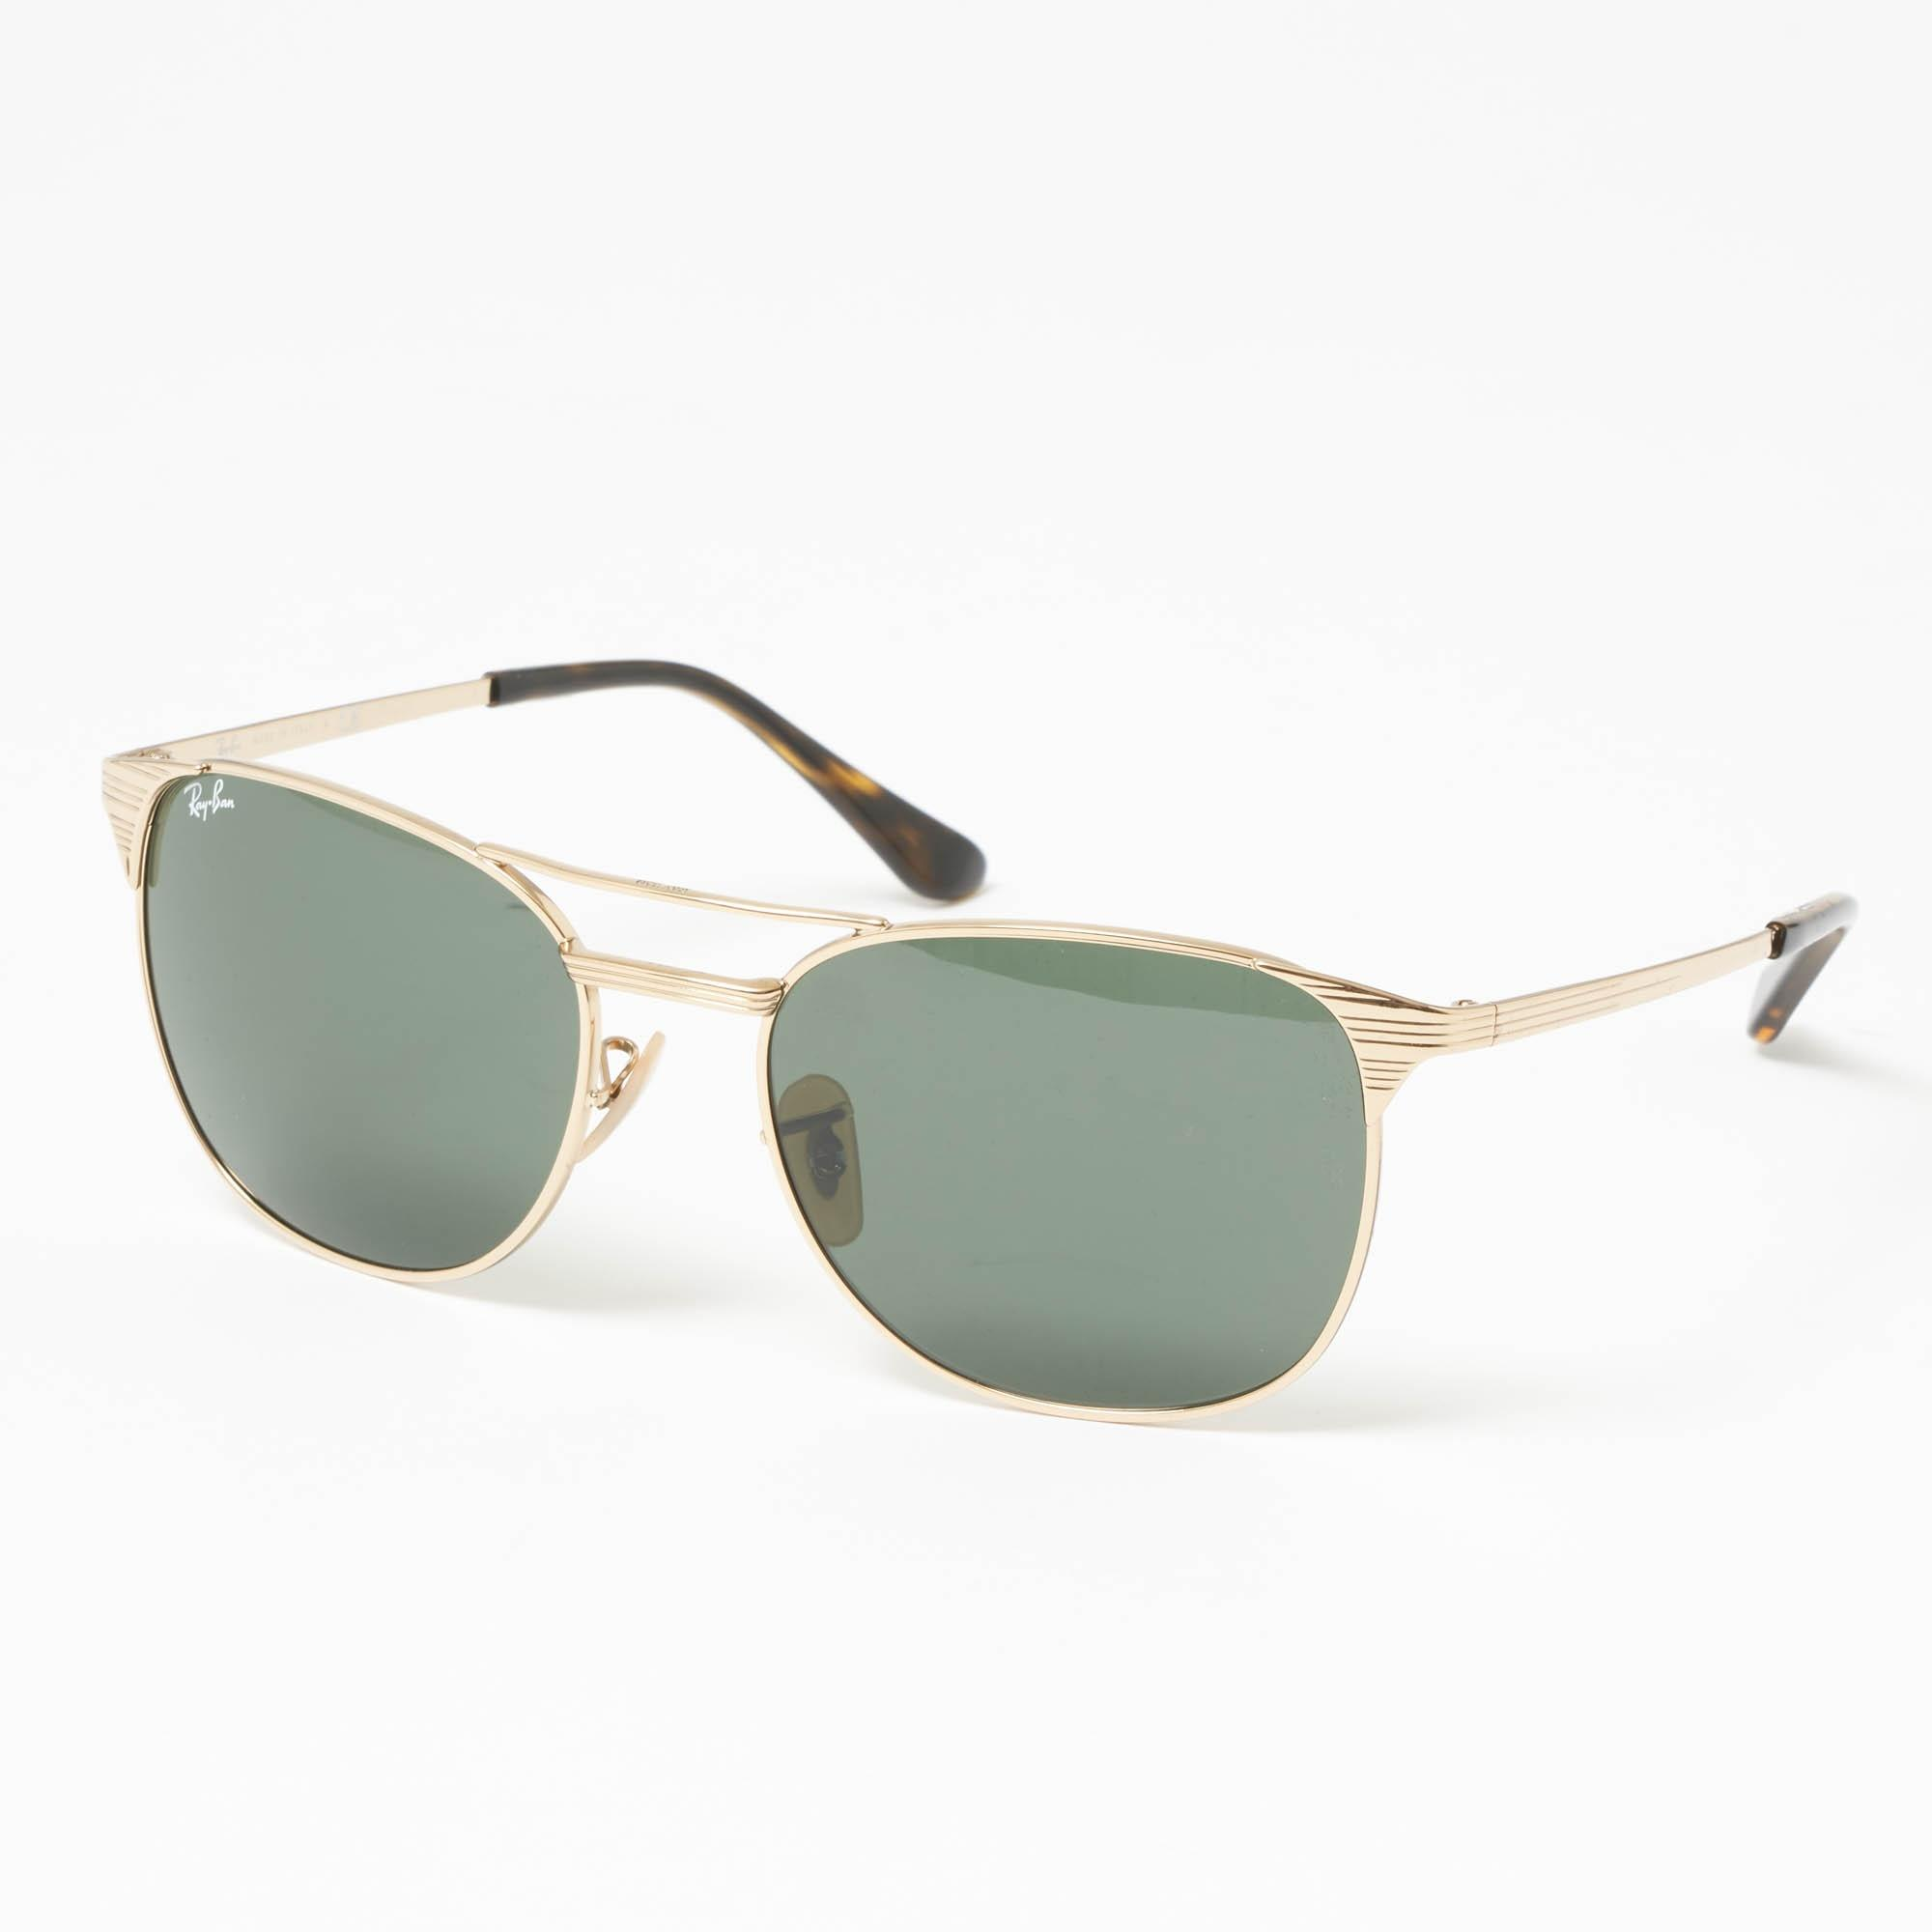 f6c68e2c25 Ray-Ban Signet Sunglasses - Green Classic G-15 Lenses in Green for ...